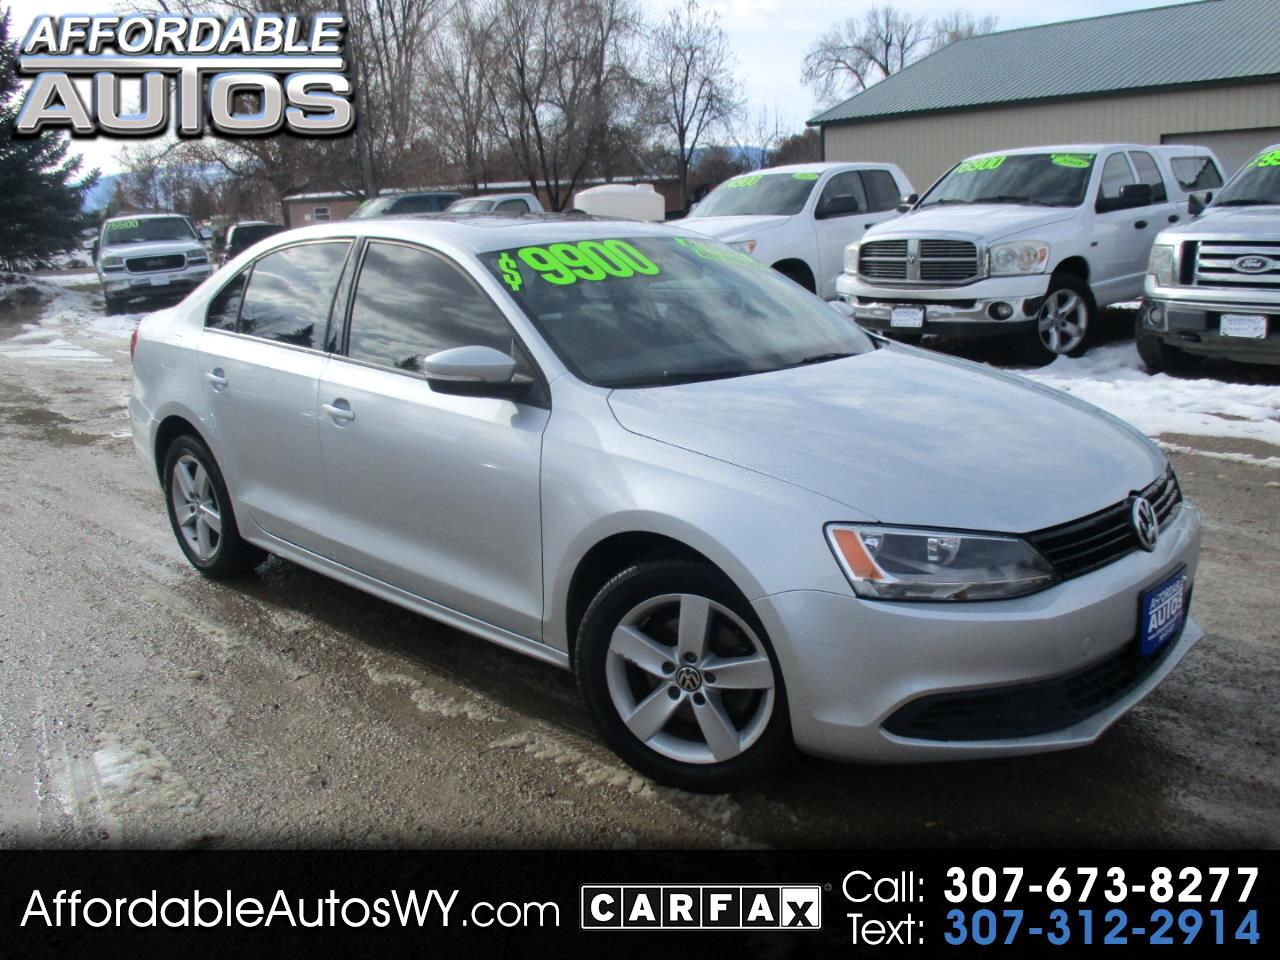 2012 Volkswagen Jetta Sedan 4dr Manual TDI w/Premium